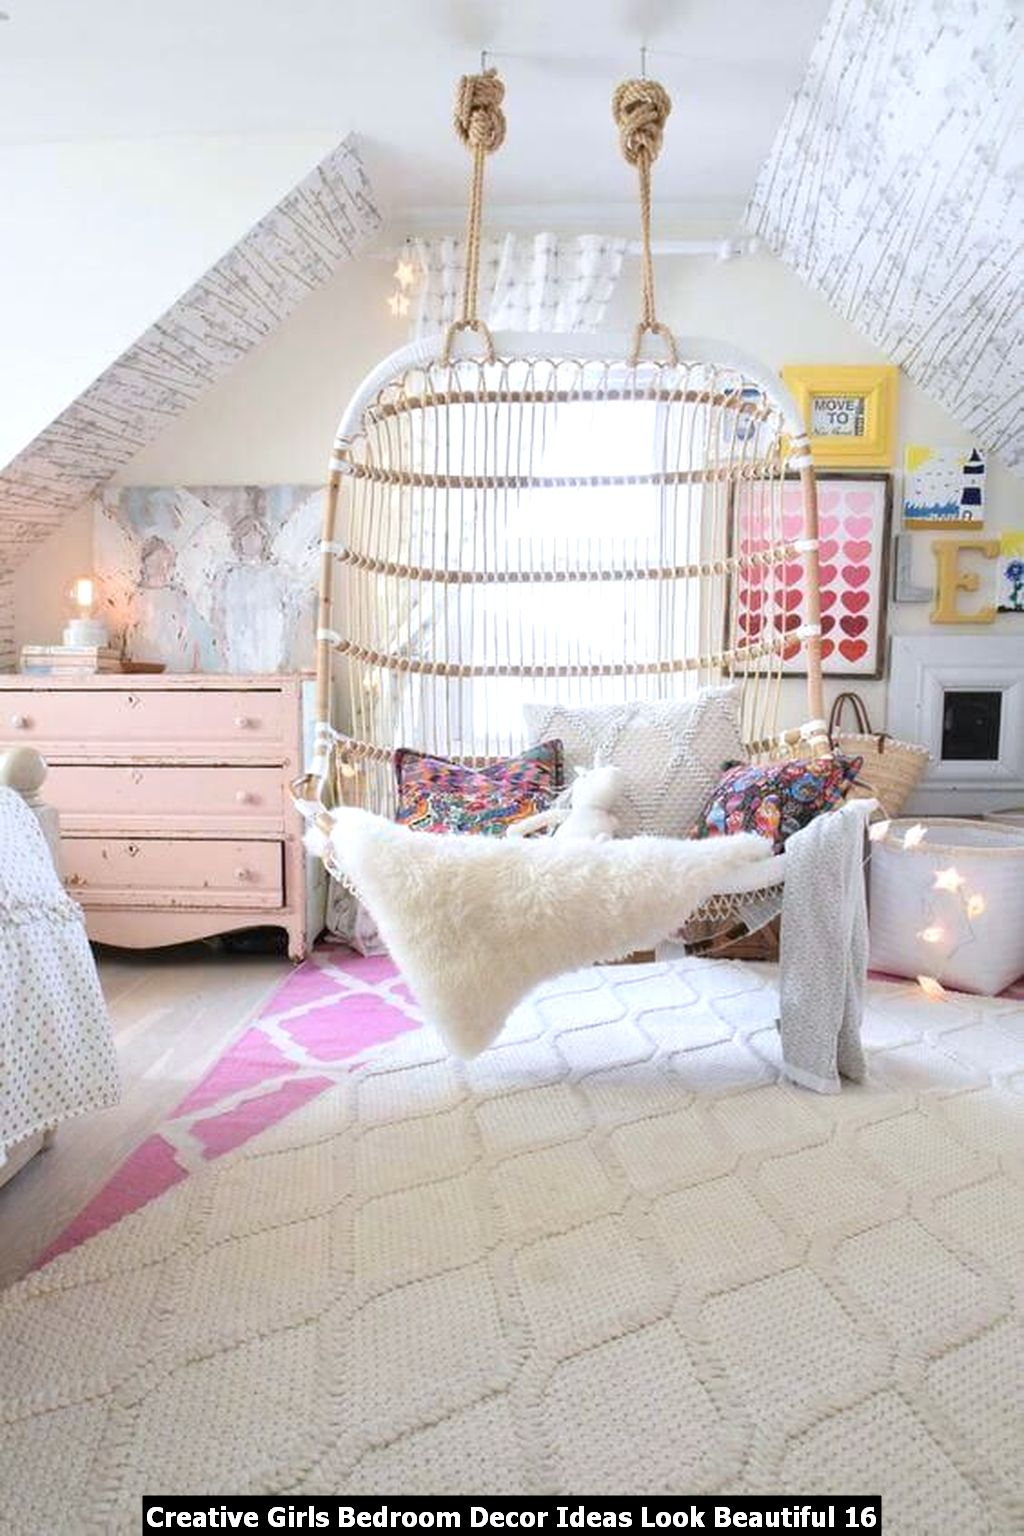 Creative Girls Bedroom Decor Ideas Look Beautiful 16